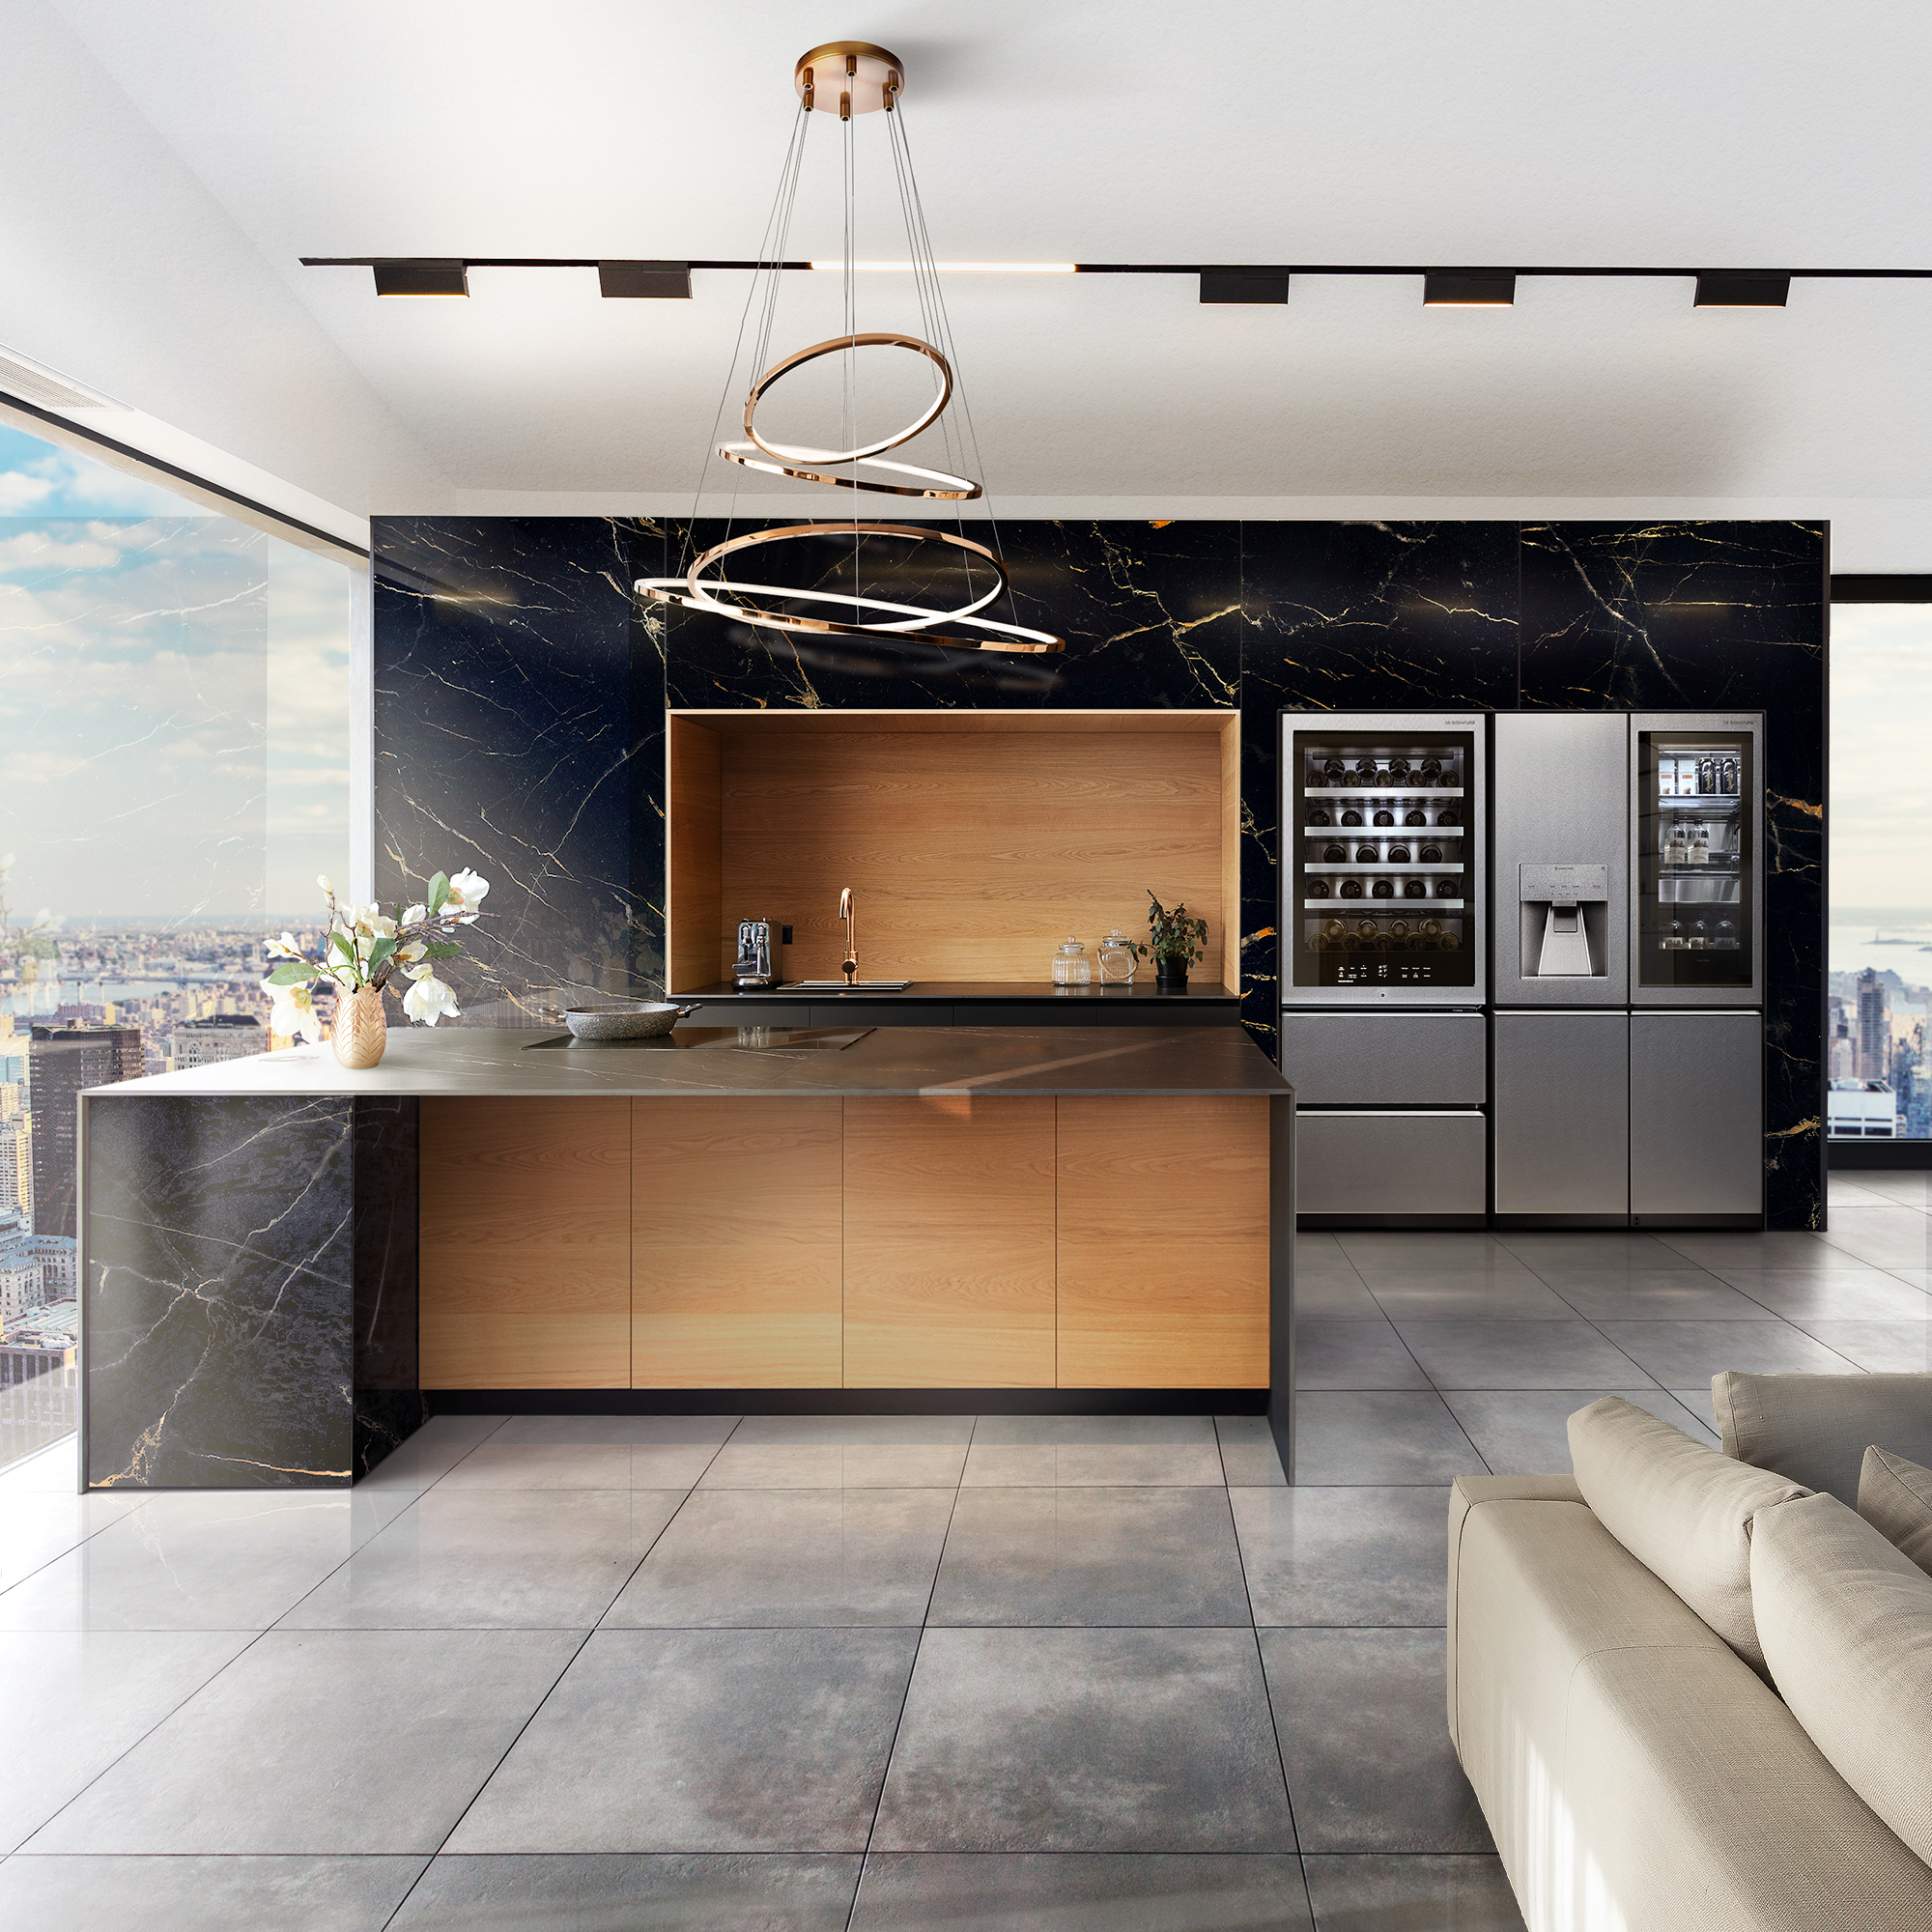 This Nero Portoro marble wall and countertop is the pinnacle of sophistication, the perfect natural backdrop for the textured steel finish of the LG SIGNATURE Refrigerator and Wine Cellar, which breathe innovation into this contemporary space. While the wood and marble bring a sense of classical nature to this modern kitchen, the state-of-the-art appliances have been designed to offer minimalist beauty and outstanding design, with an energy-efficient cooling system that can't be rivaled.